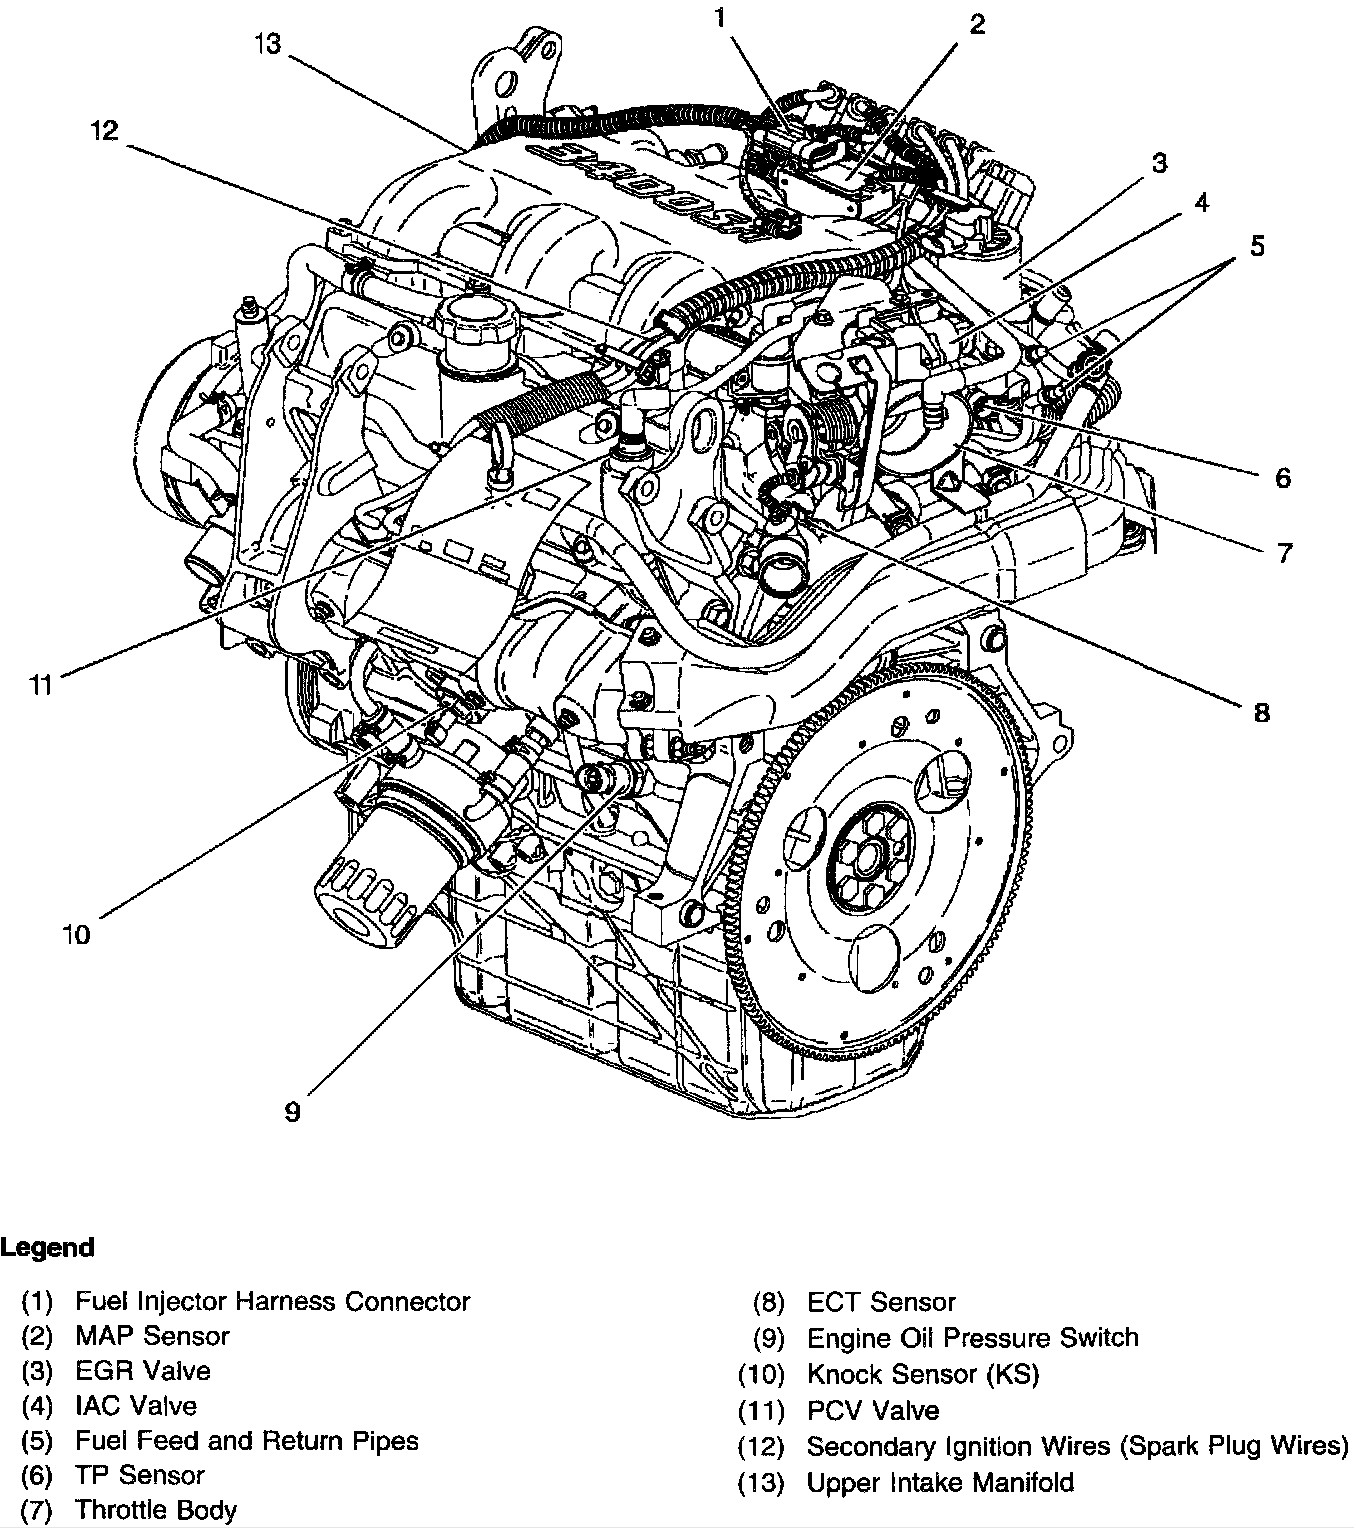 Gm 4 3 Liter Vortec Engine Diagram